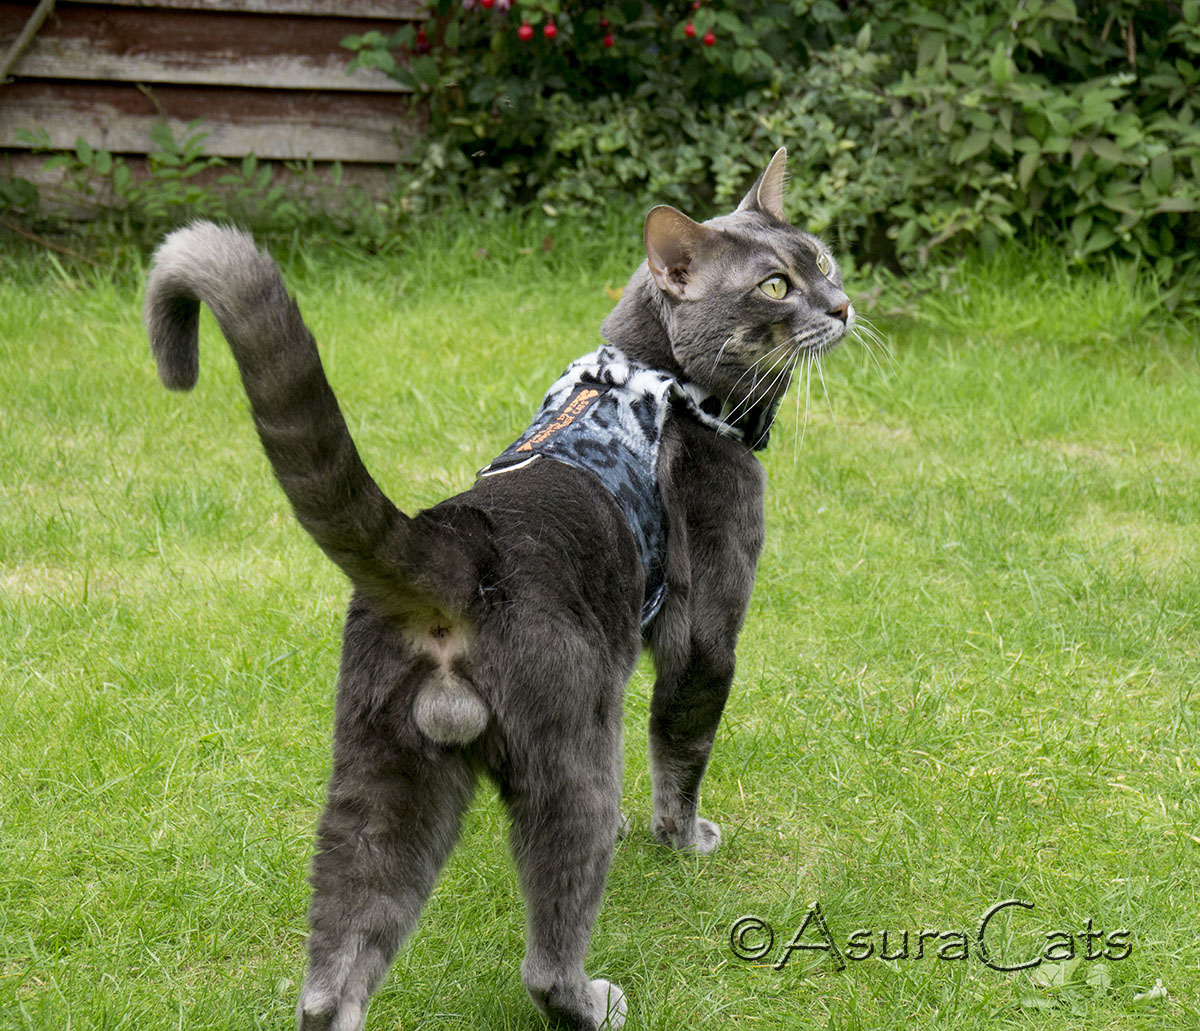 PureBengalsGB Baloo AsuraCats - Charcoal Blue rosetted Bengal